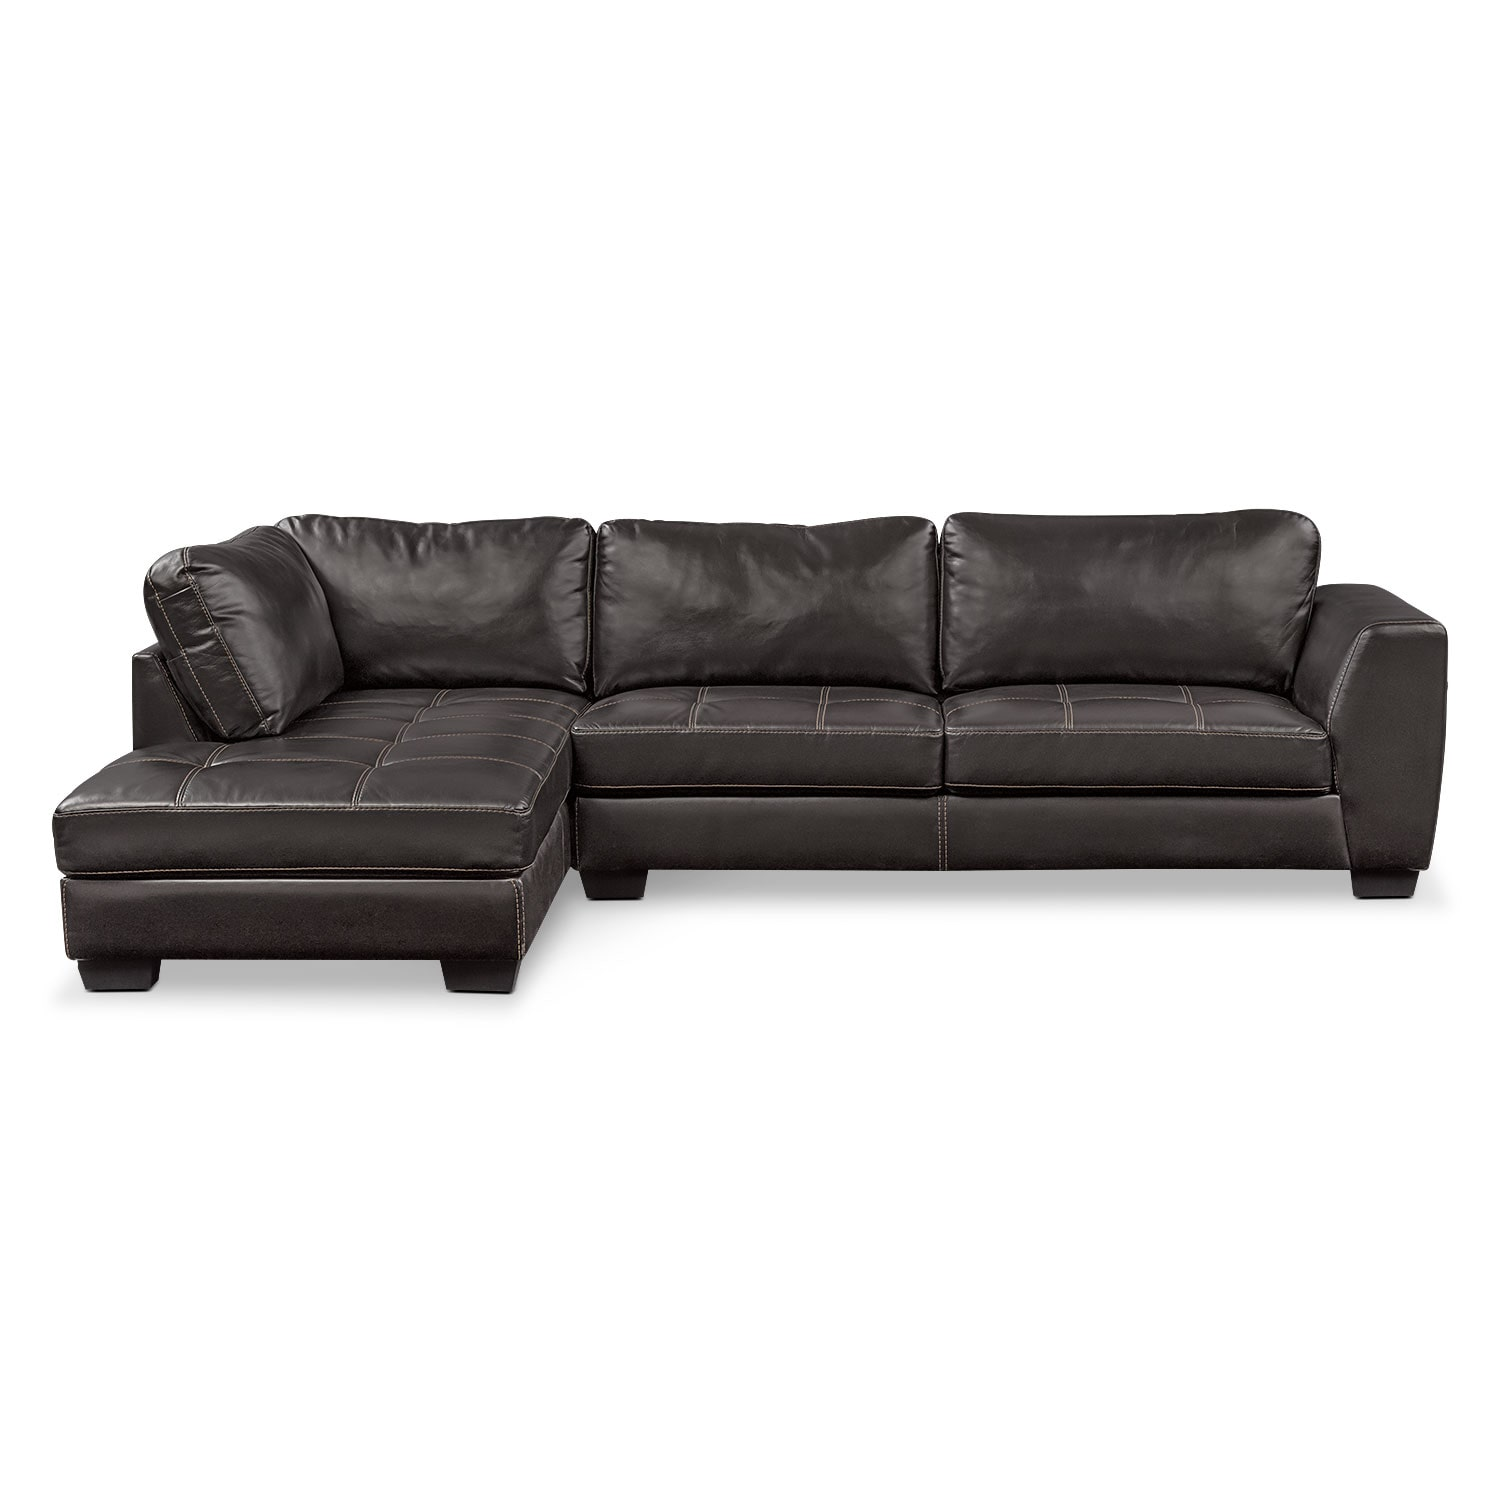 Santana 2 piece sectional with left facing chaise black for 2 piece sectional sofa with chaise